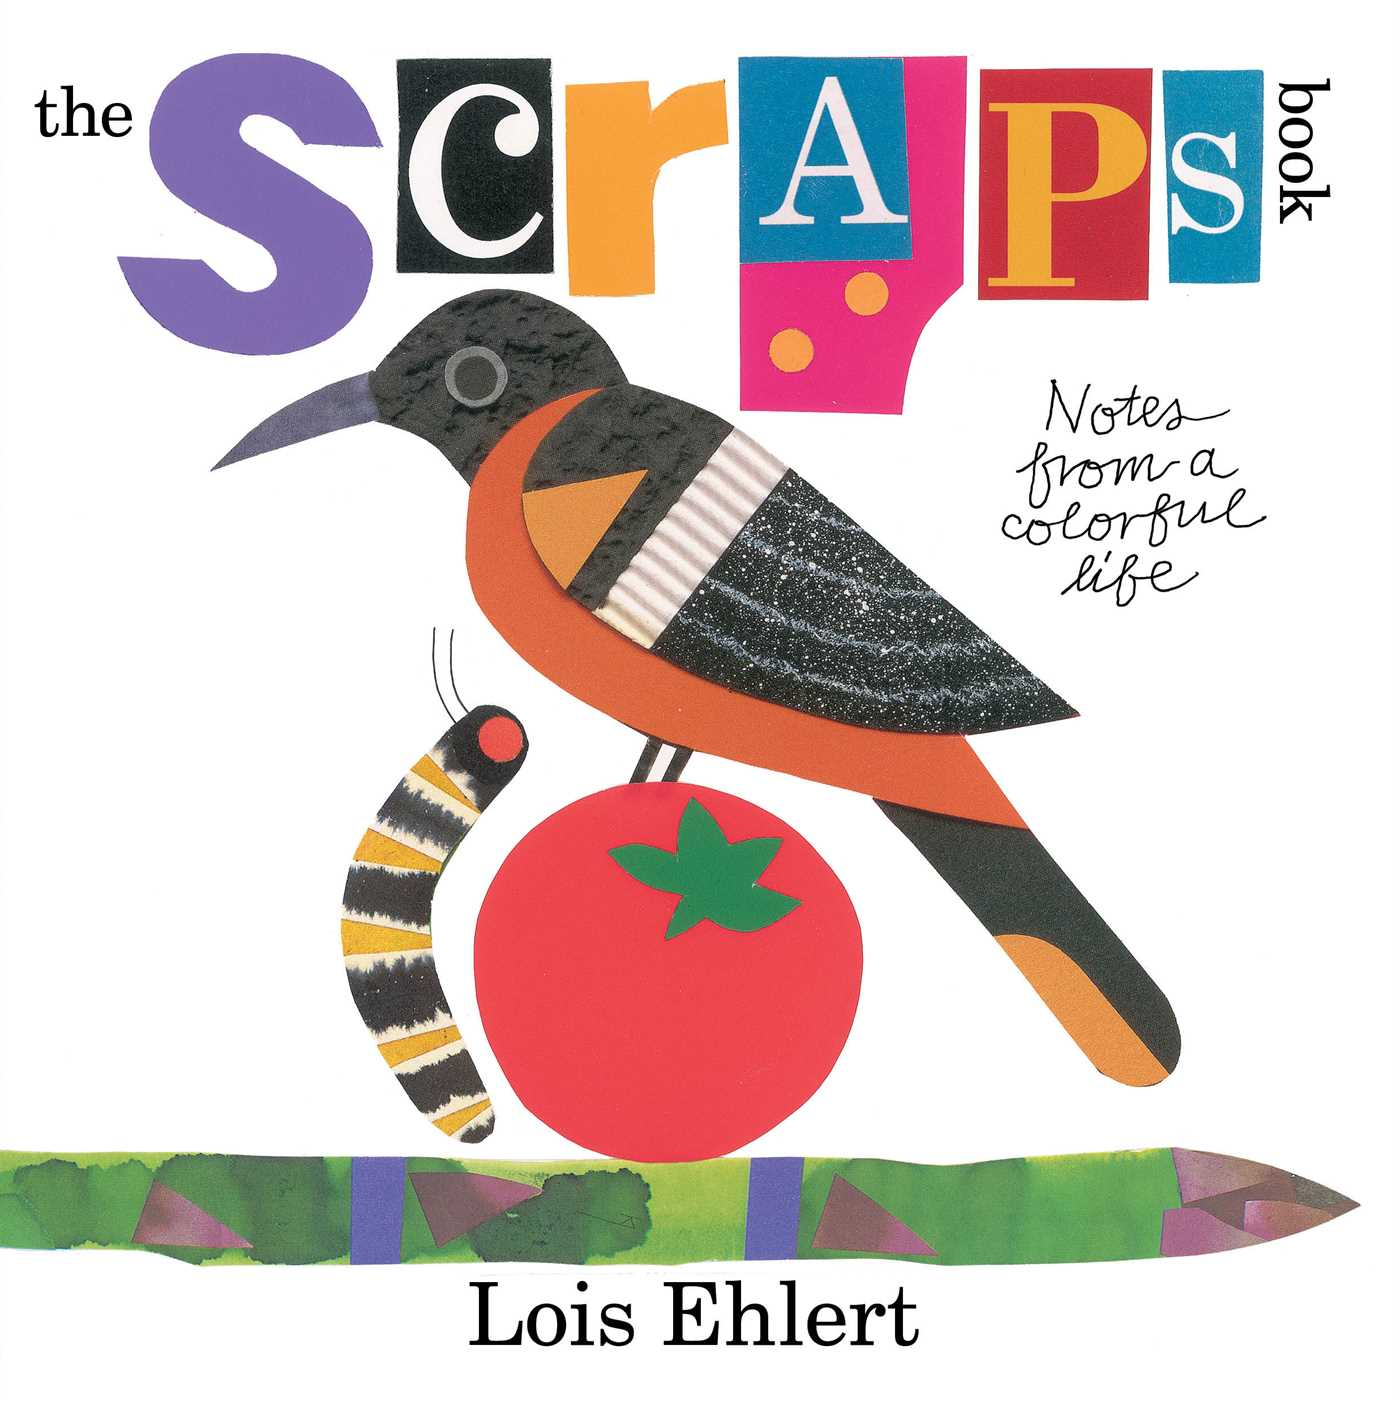 The Scraps Book | Book by Lois Ehlert | Official Publisher